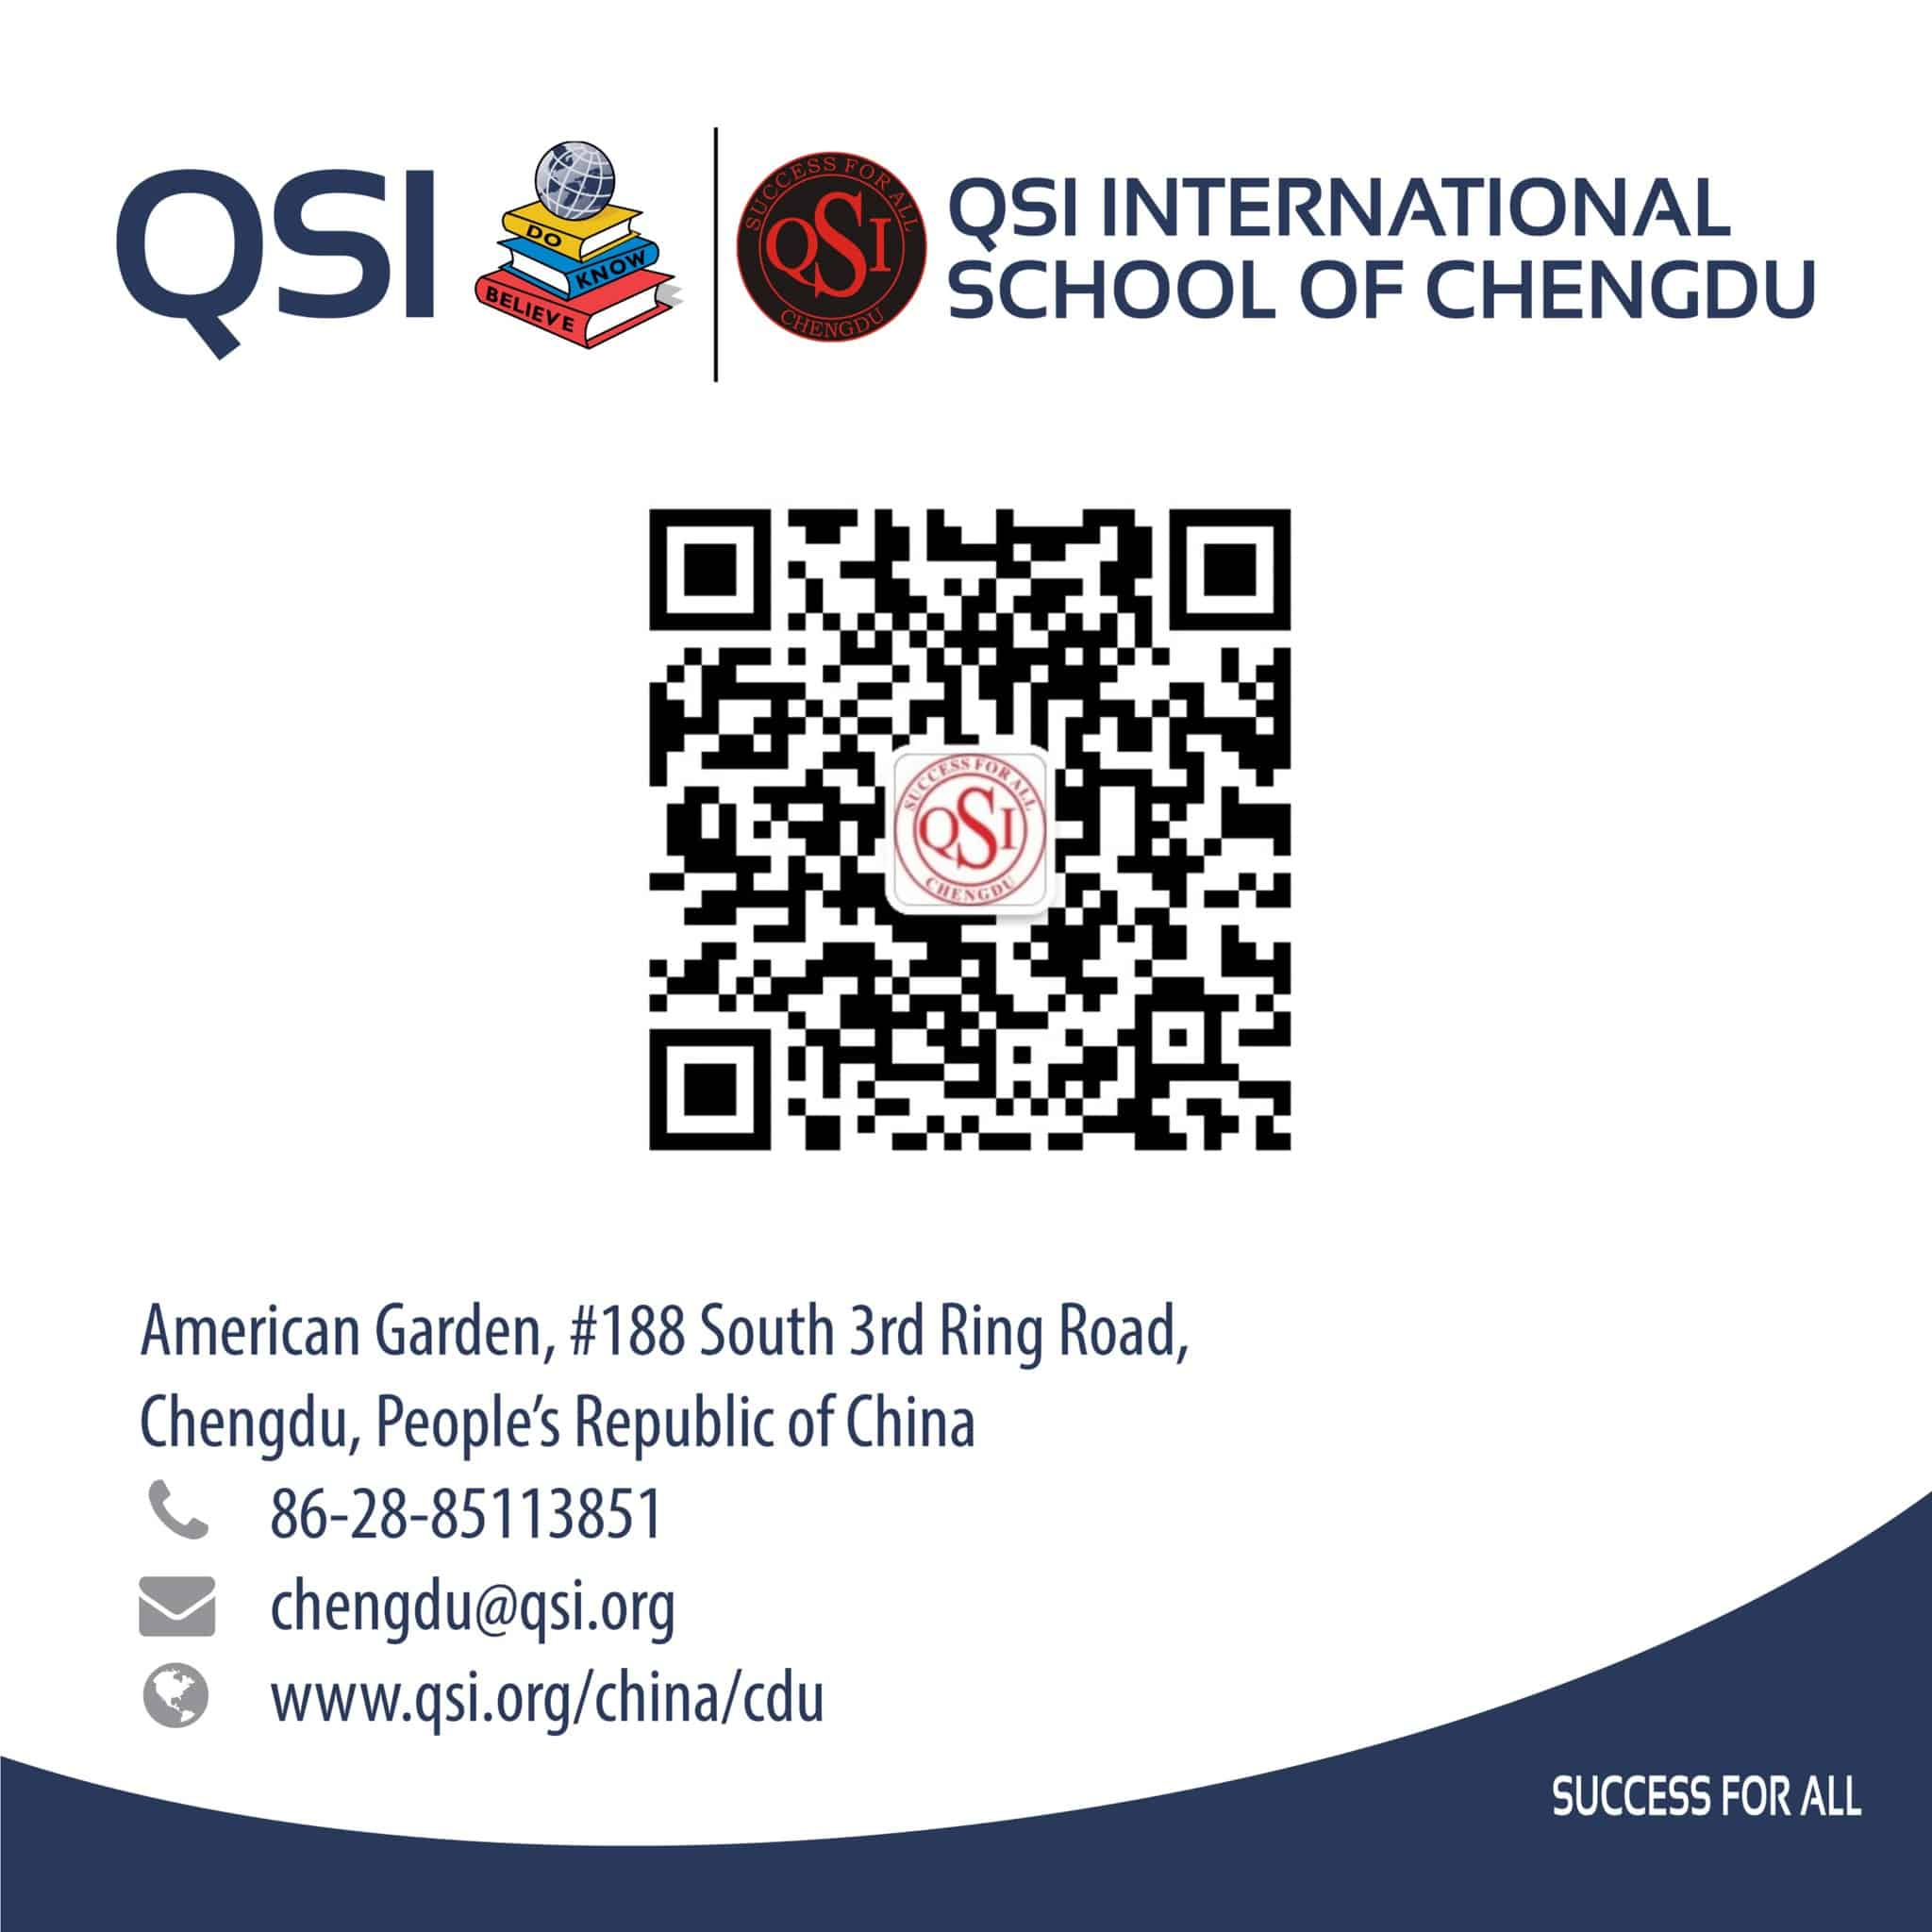 QSI International School of Chengdu